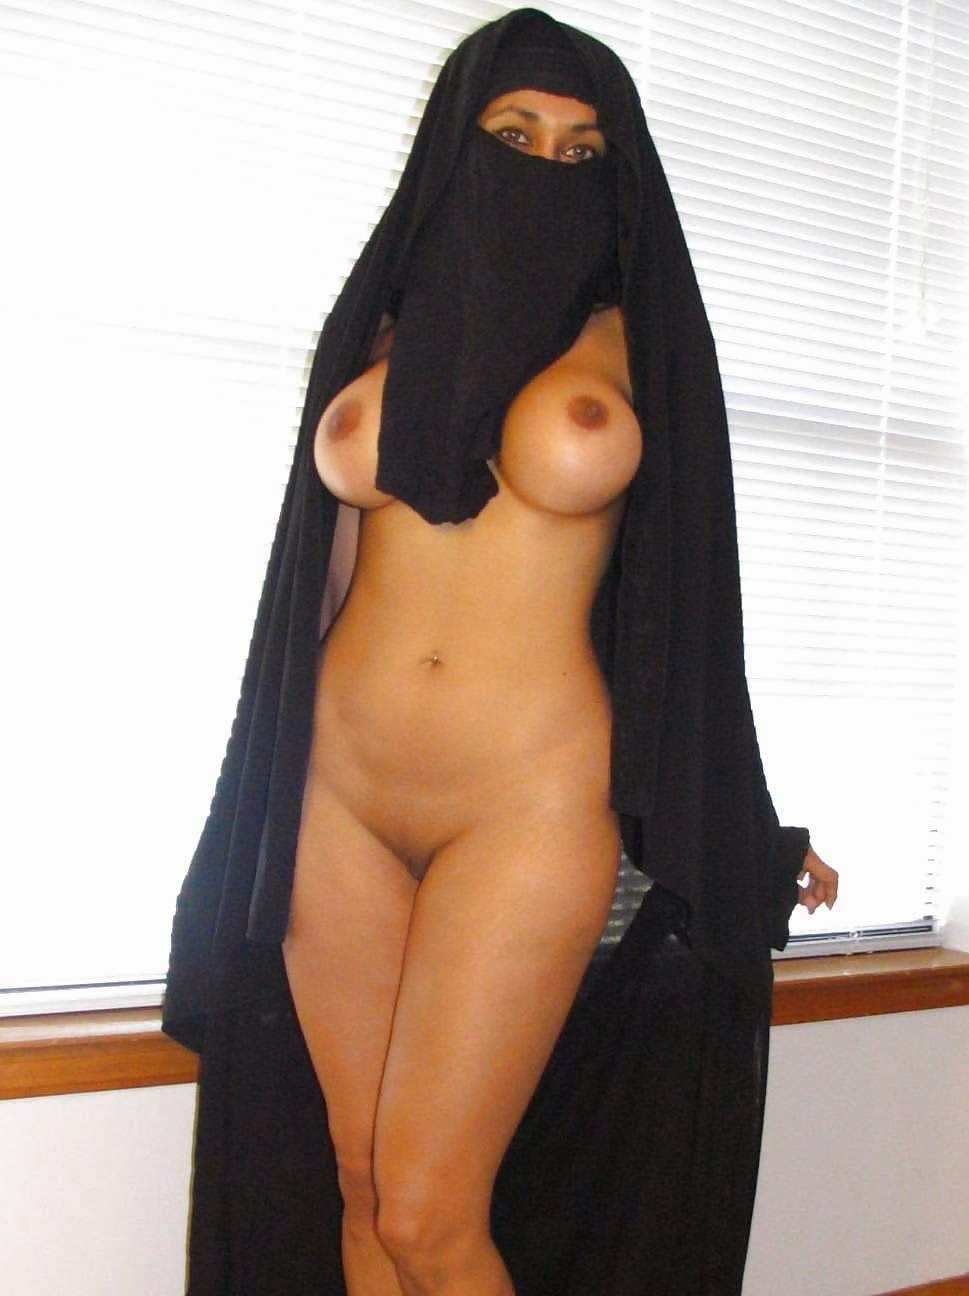 hot dubai girl nude